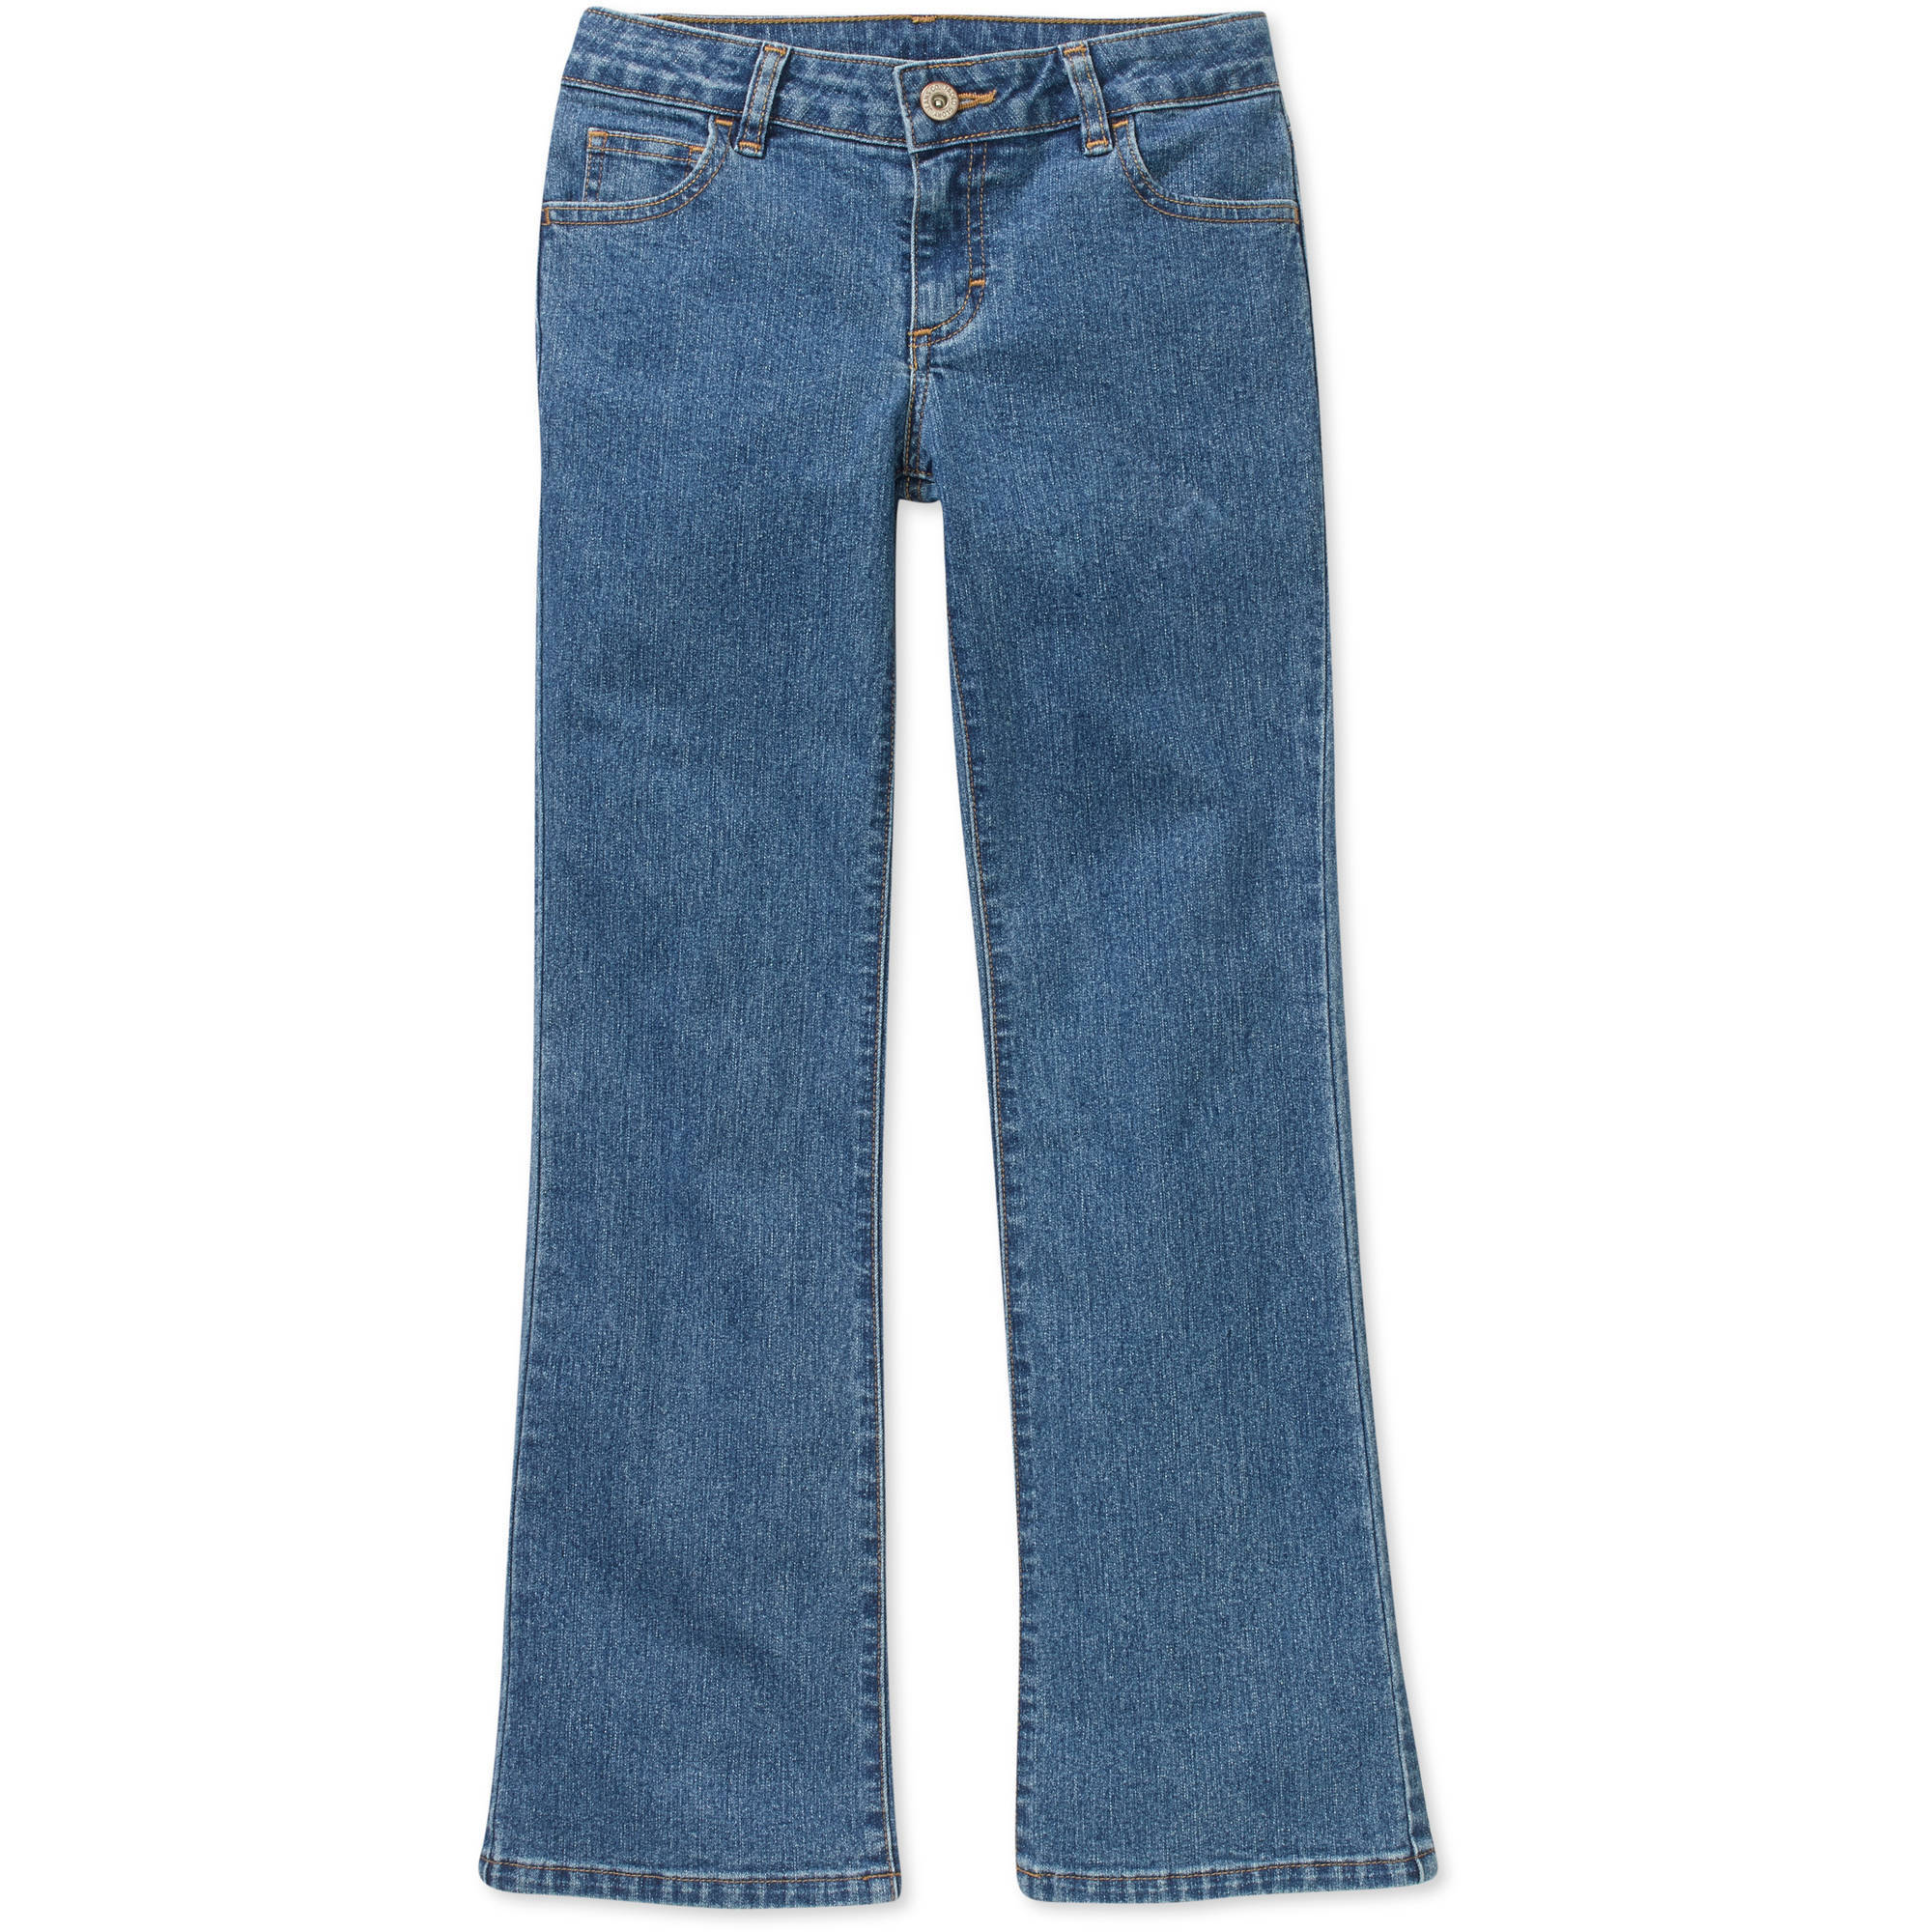 Iz2 dress mail order_bu 0 - Faded Glory Girls Bootcut Jeans